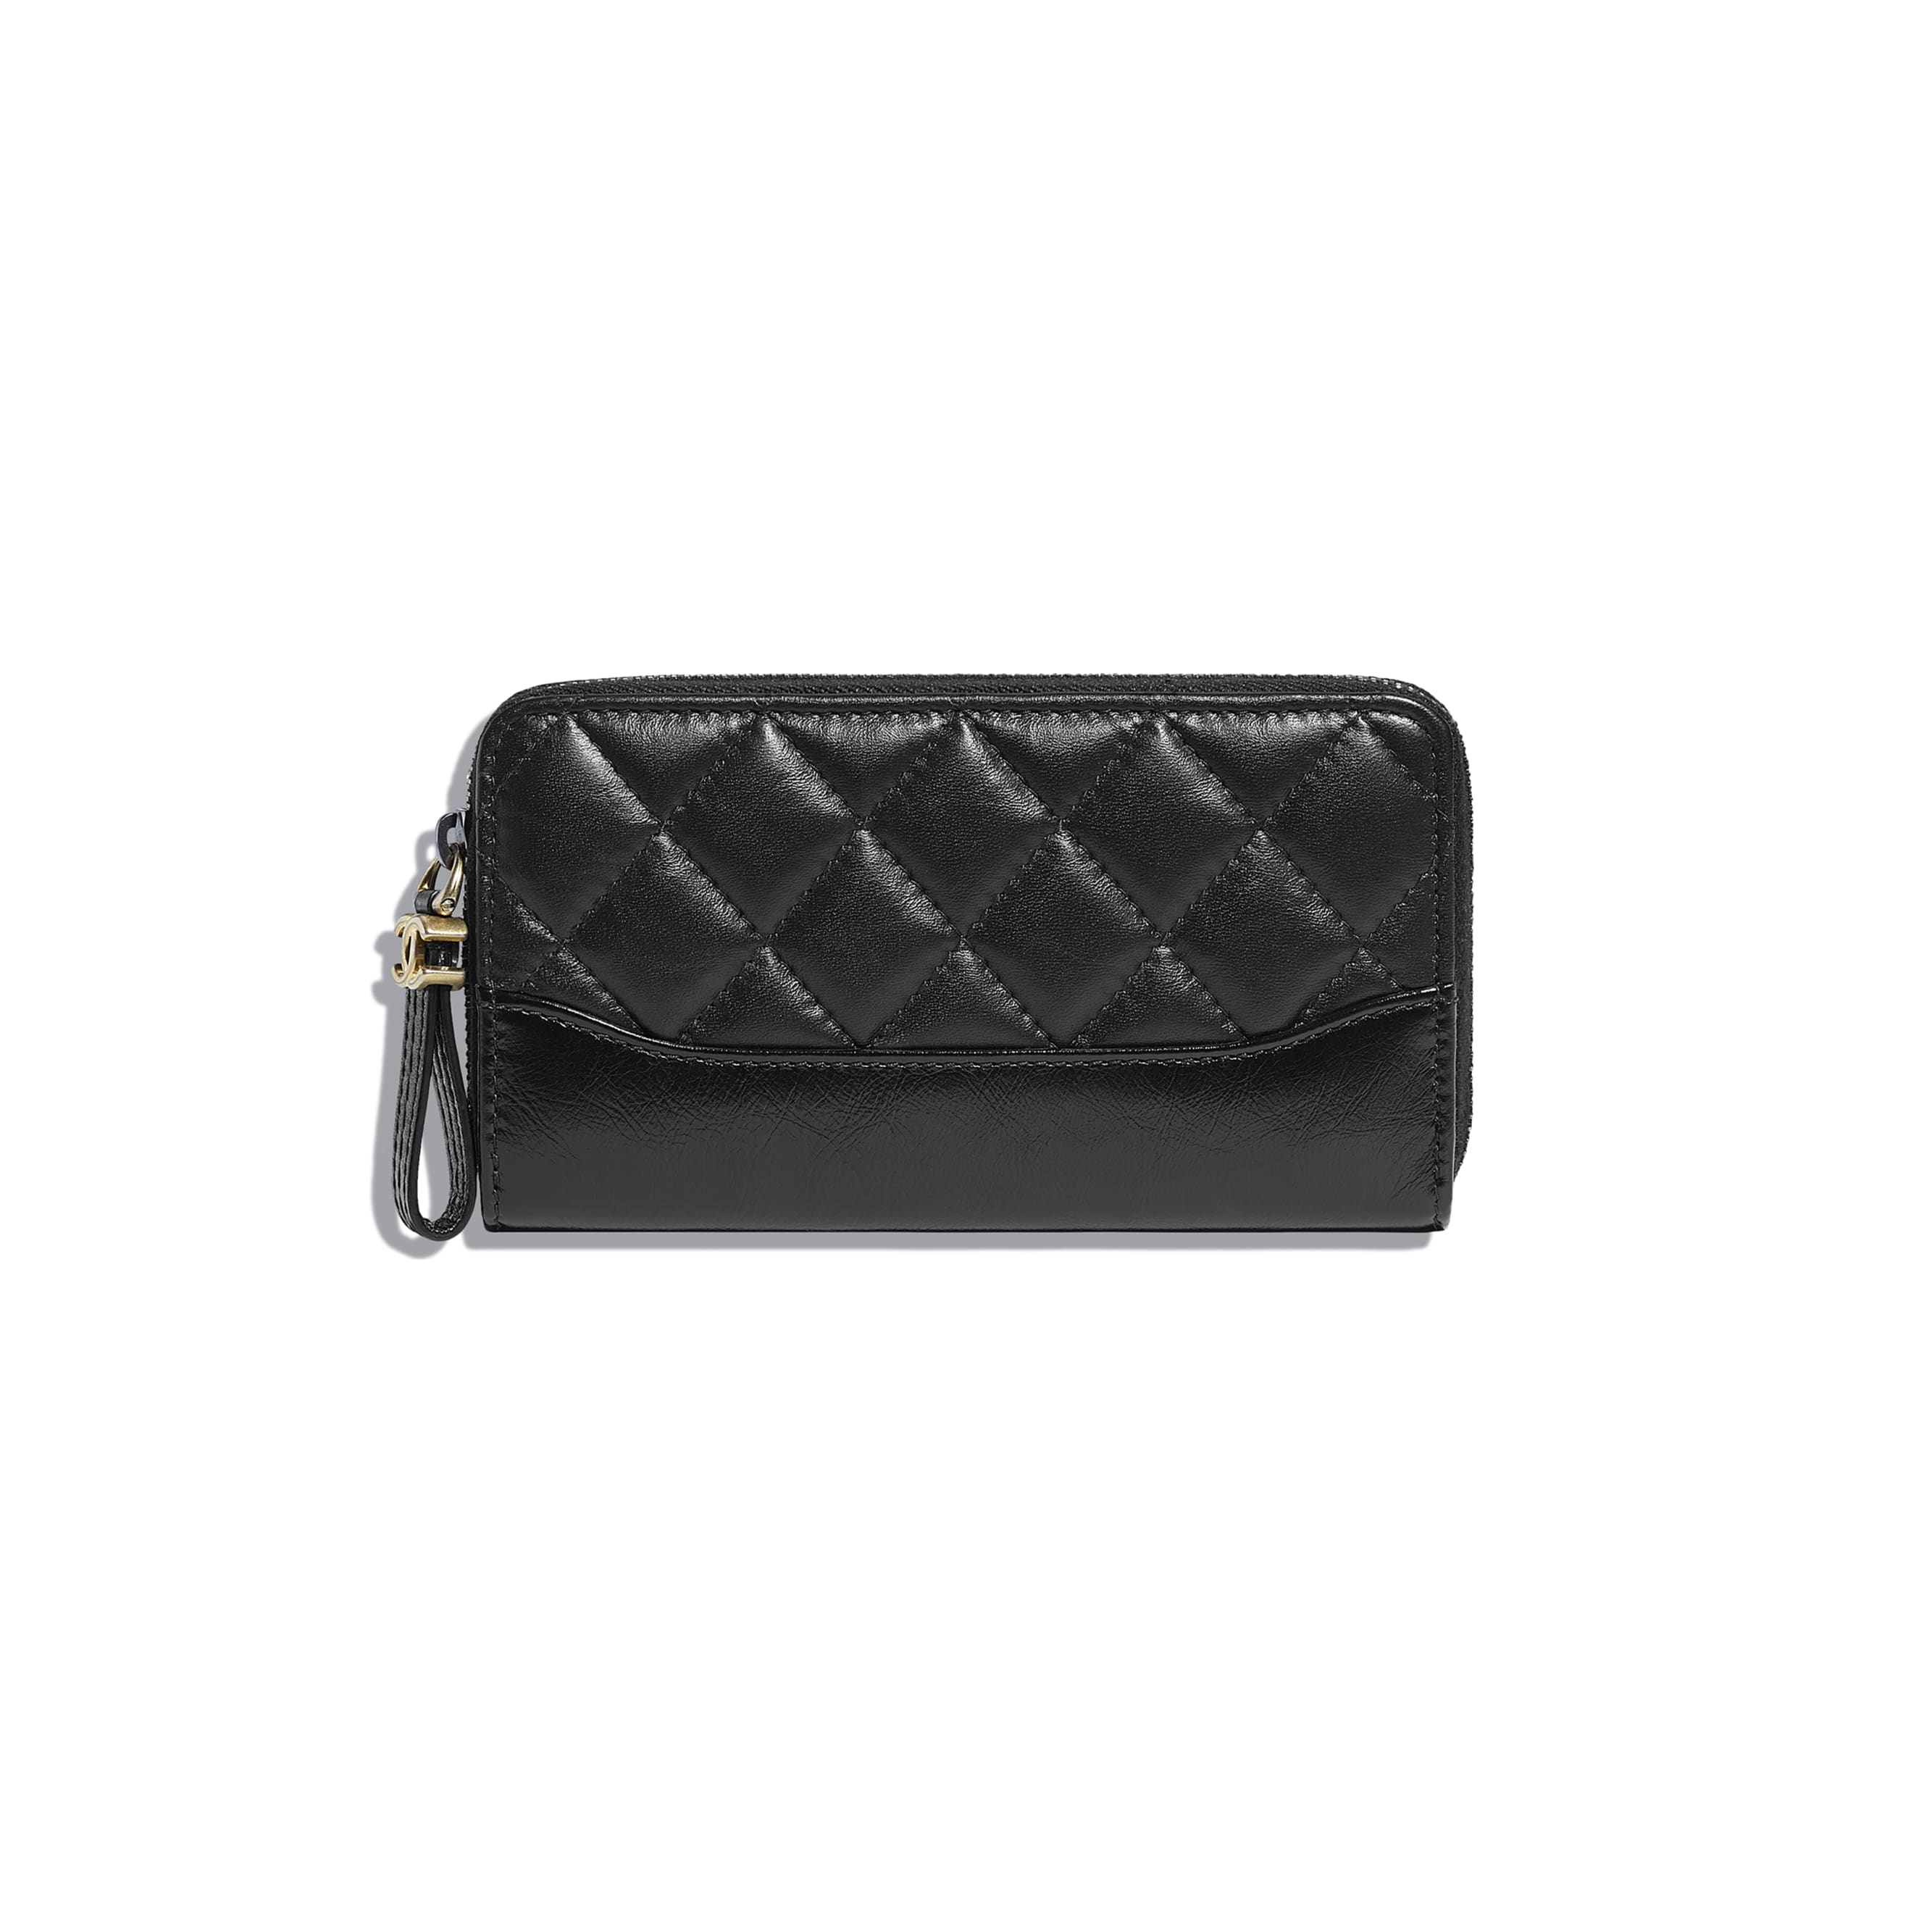 Zip Wallet - Black - Aged Calfskin, Smooth Calfskin, Silver-Tone & Gold-Tone Metal - Default view - see standard sized version